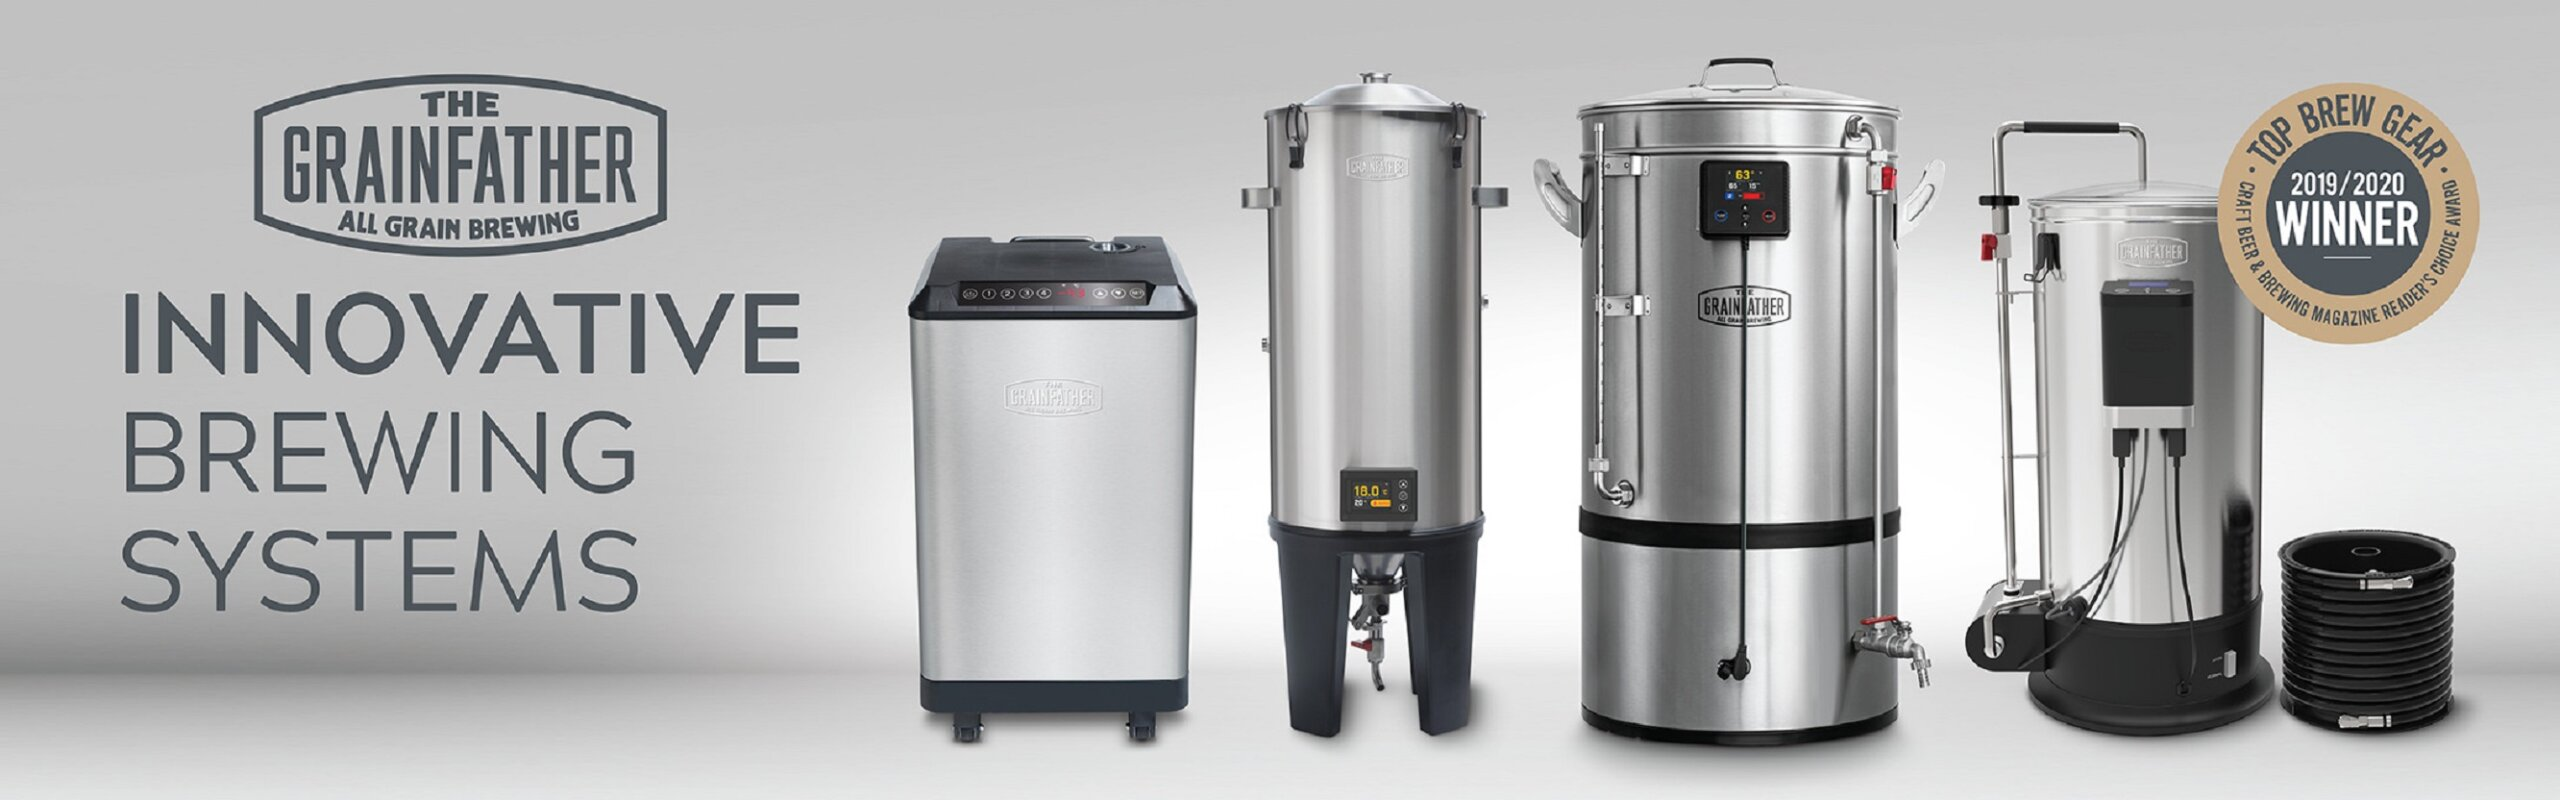 Grainfather Family